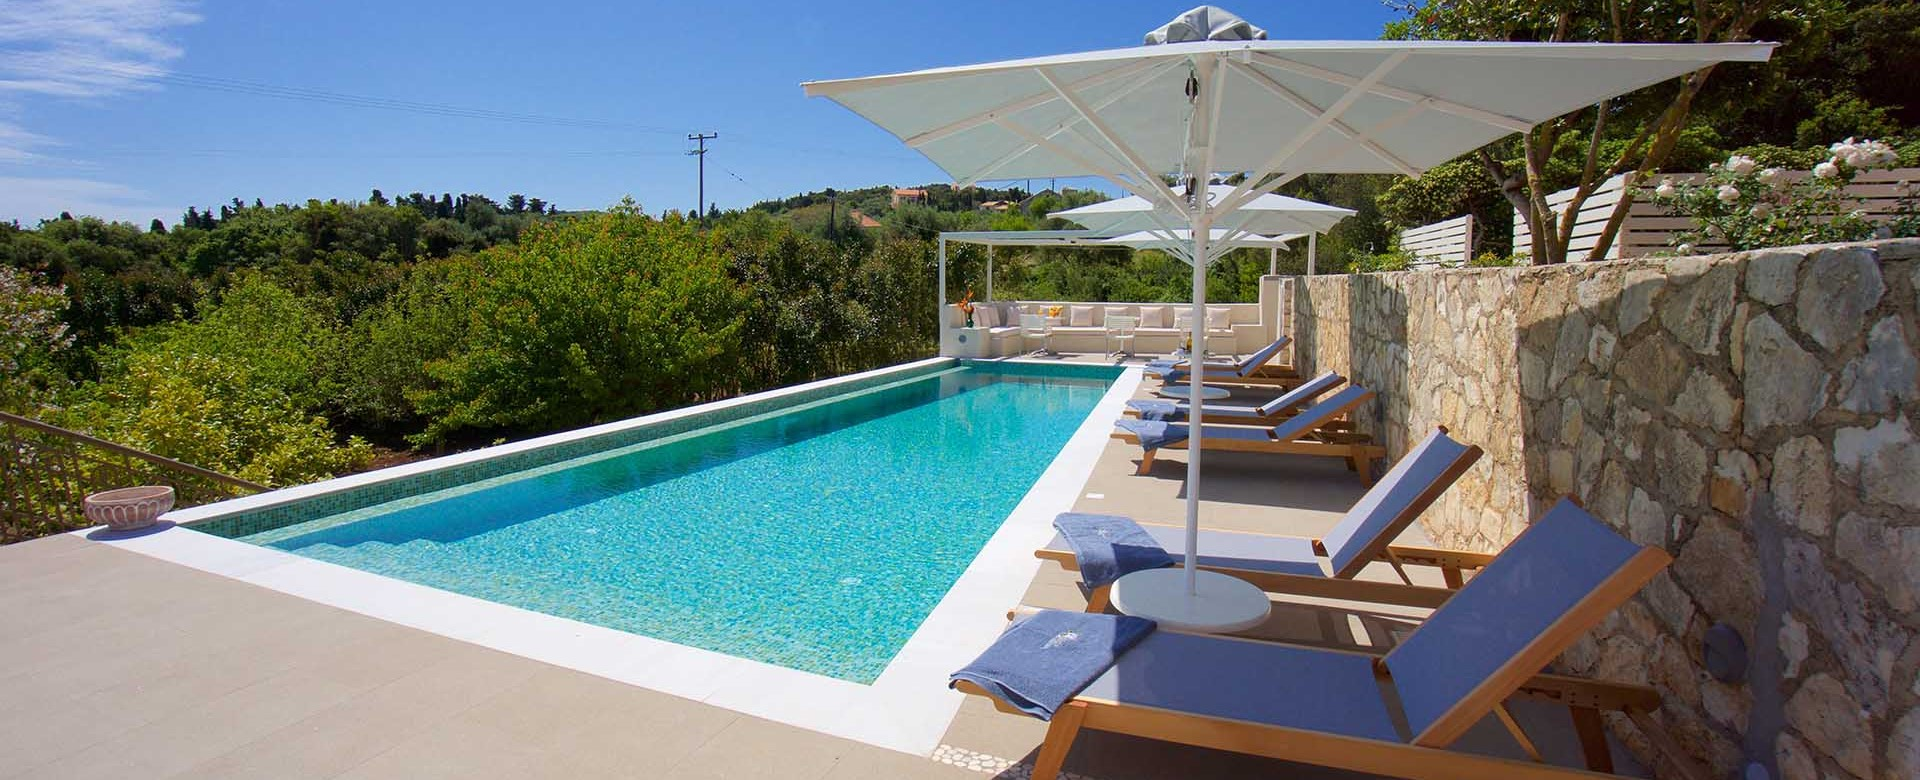 Pool sun beds and green views from Magnolia Apartments, Fiscardo, Kefalonia, Greek Islands